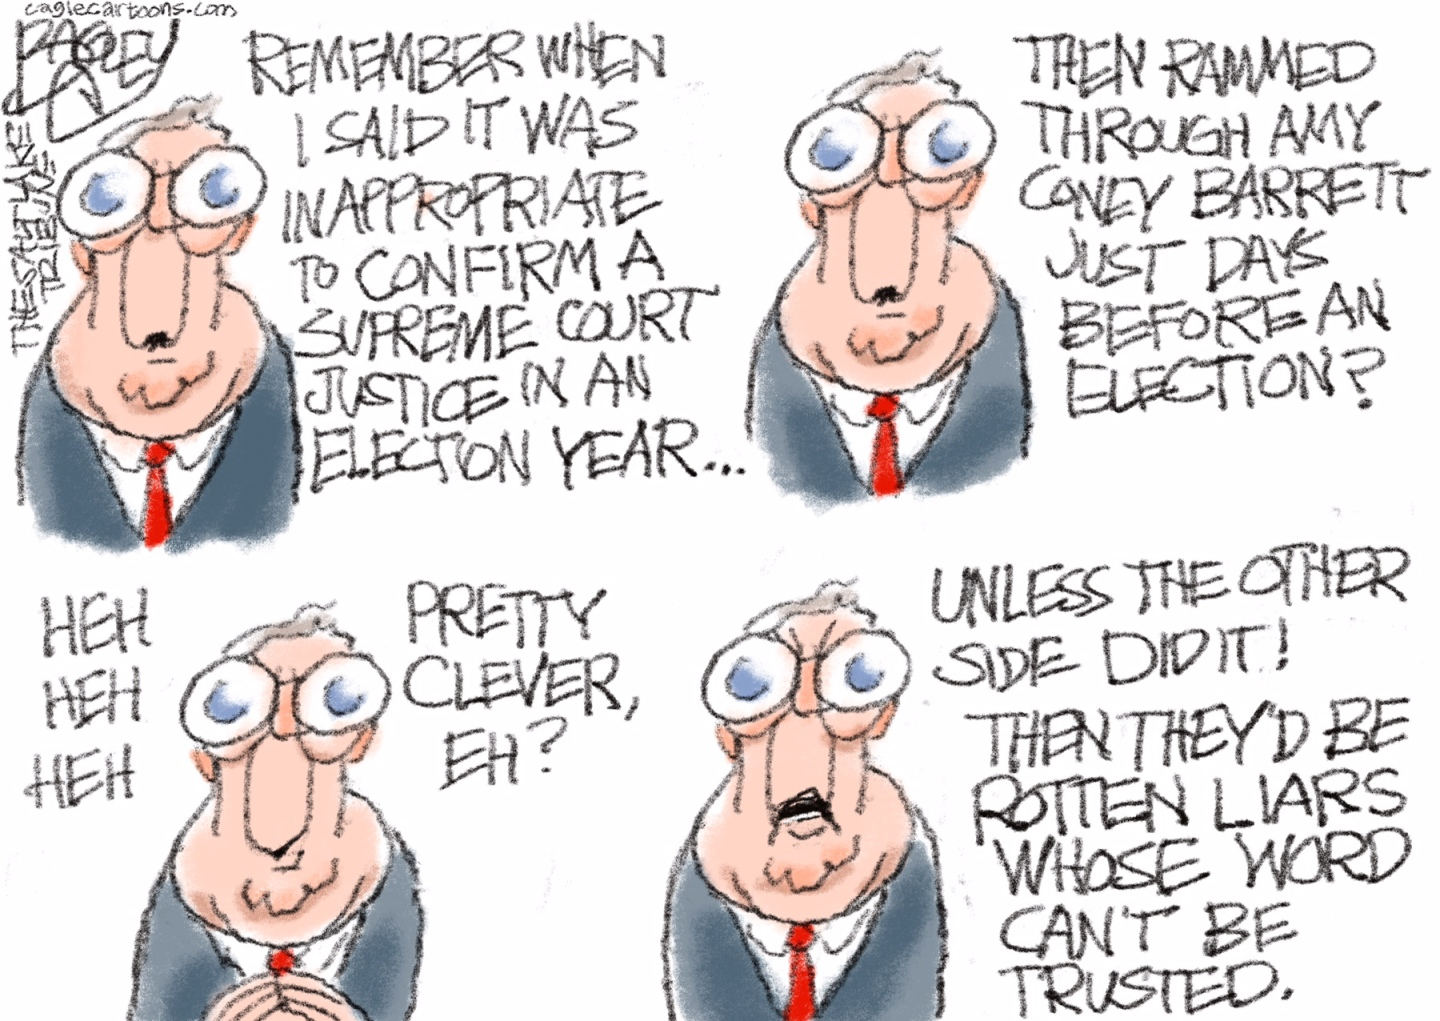 Mitch McConnell and the Republicans stack the Supreme Court. Roberts passed Citizens United that allows unlimited corporate political donations.